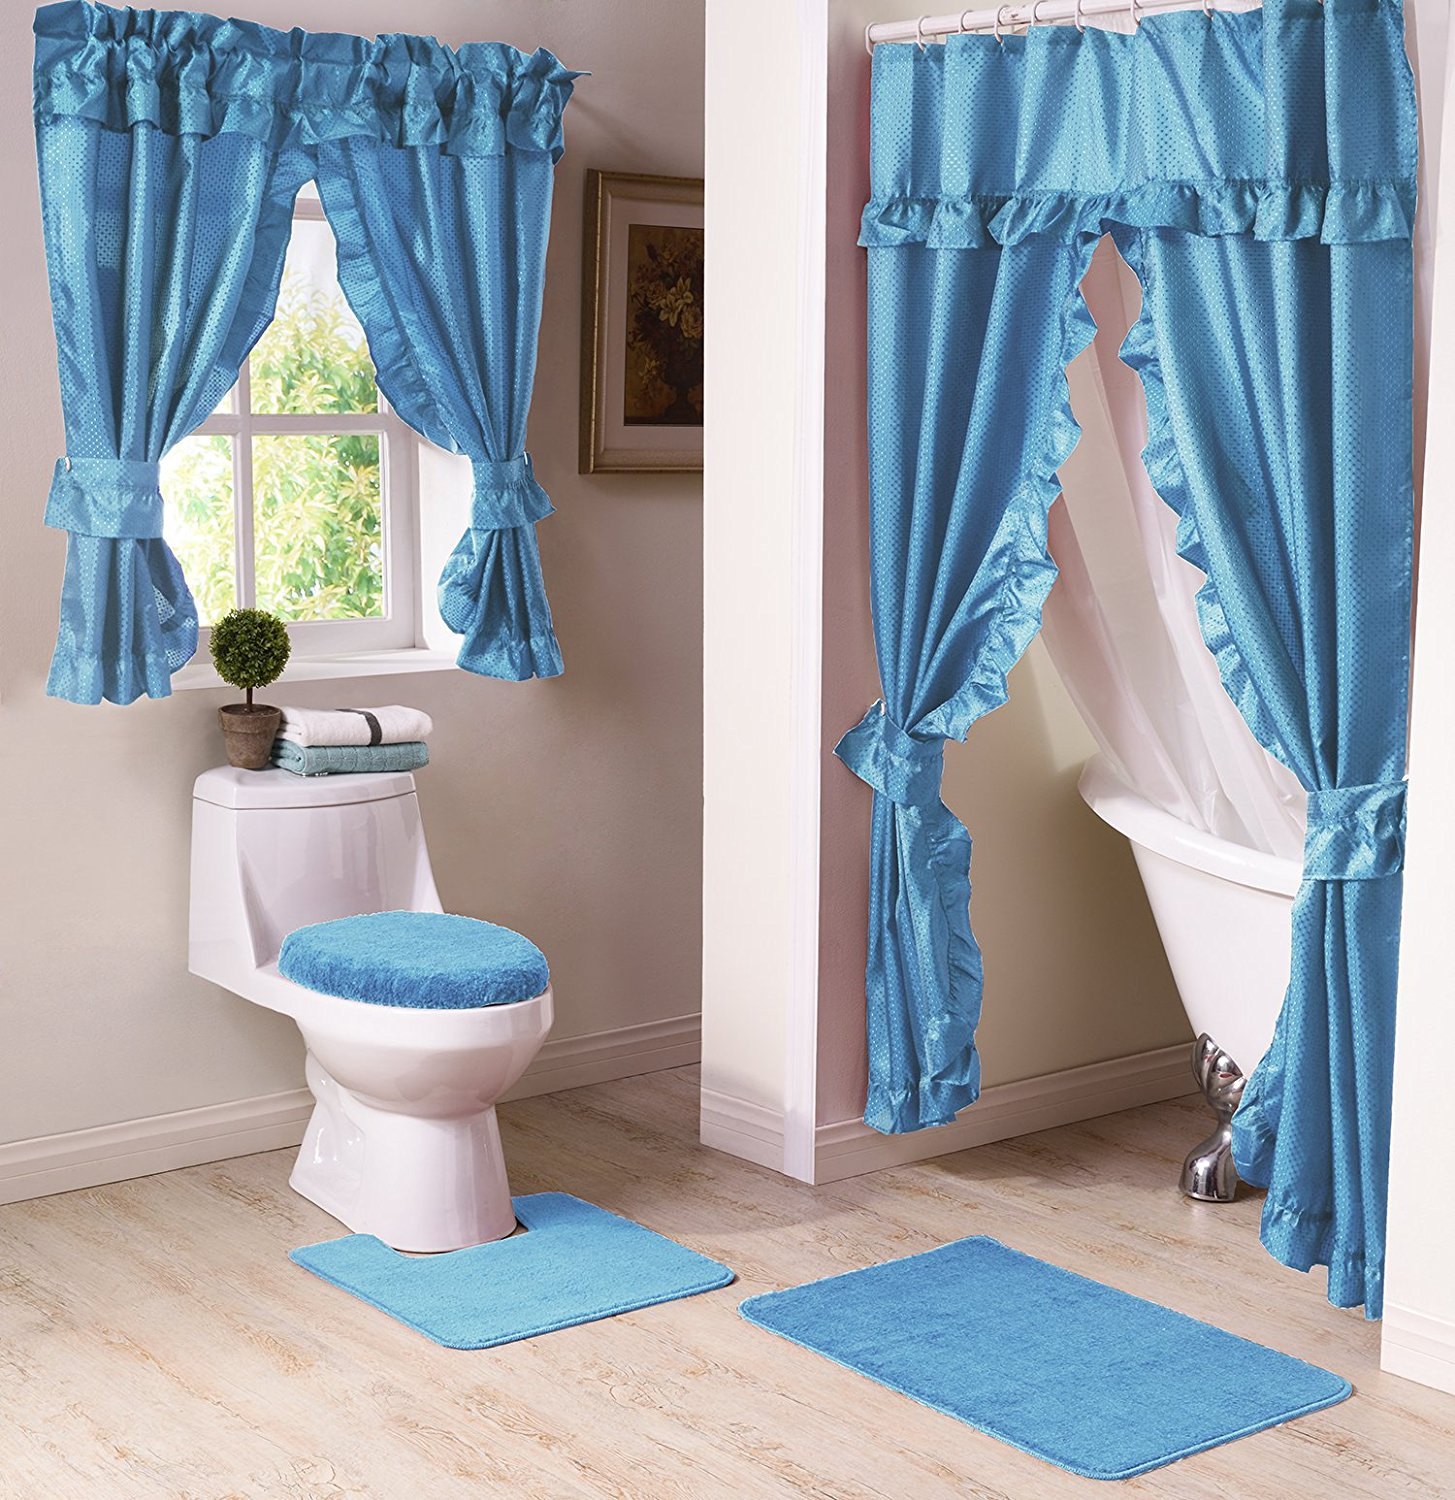 patio chair pads awesome office chairs blue lauren double swag shower curtain